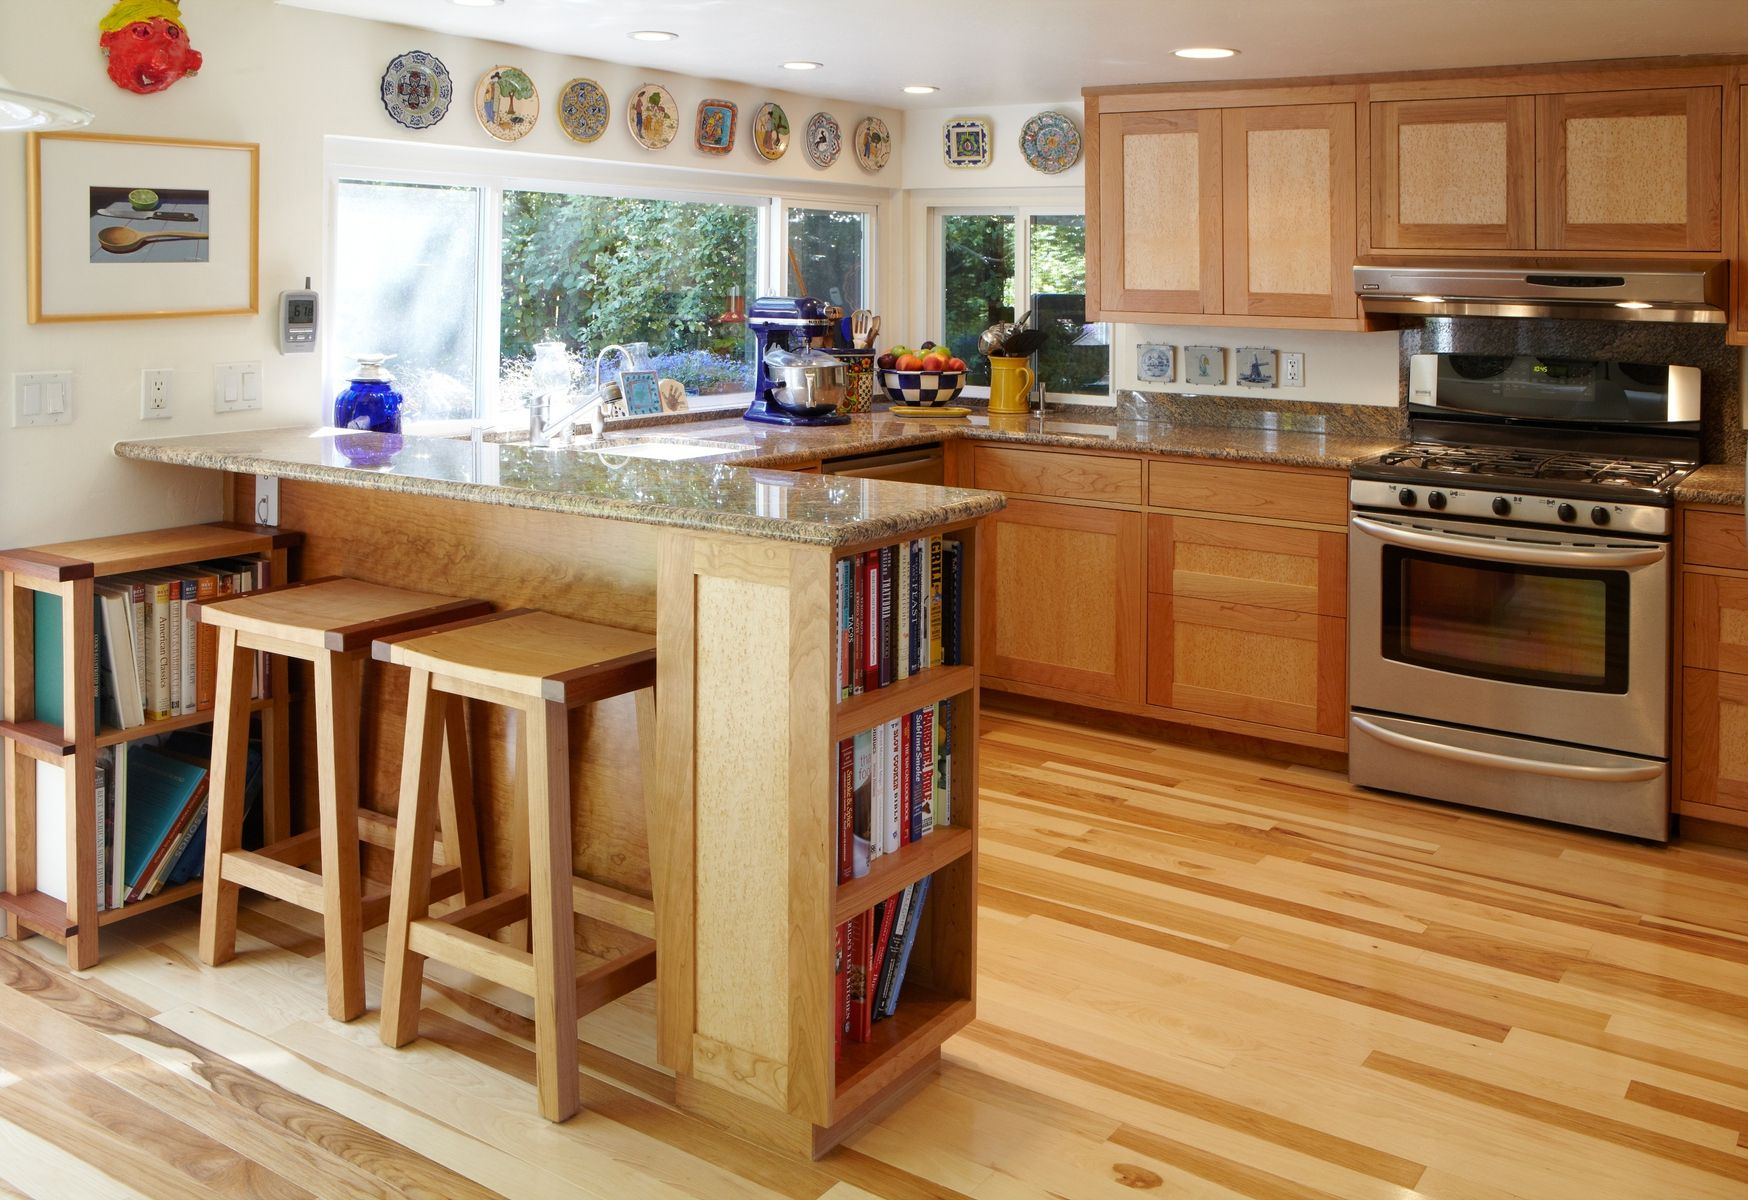 Hand made cherry and birdseye maple kitchen by nepalo for Birdseye maple kitchen cabinets